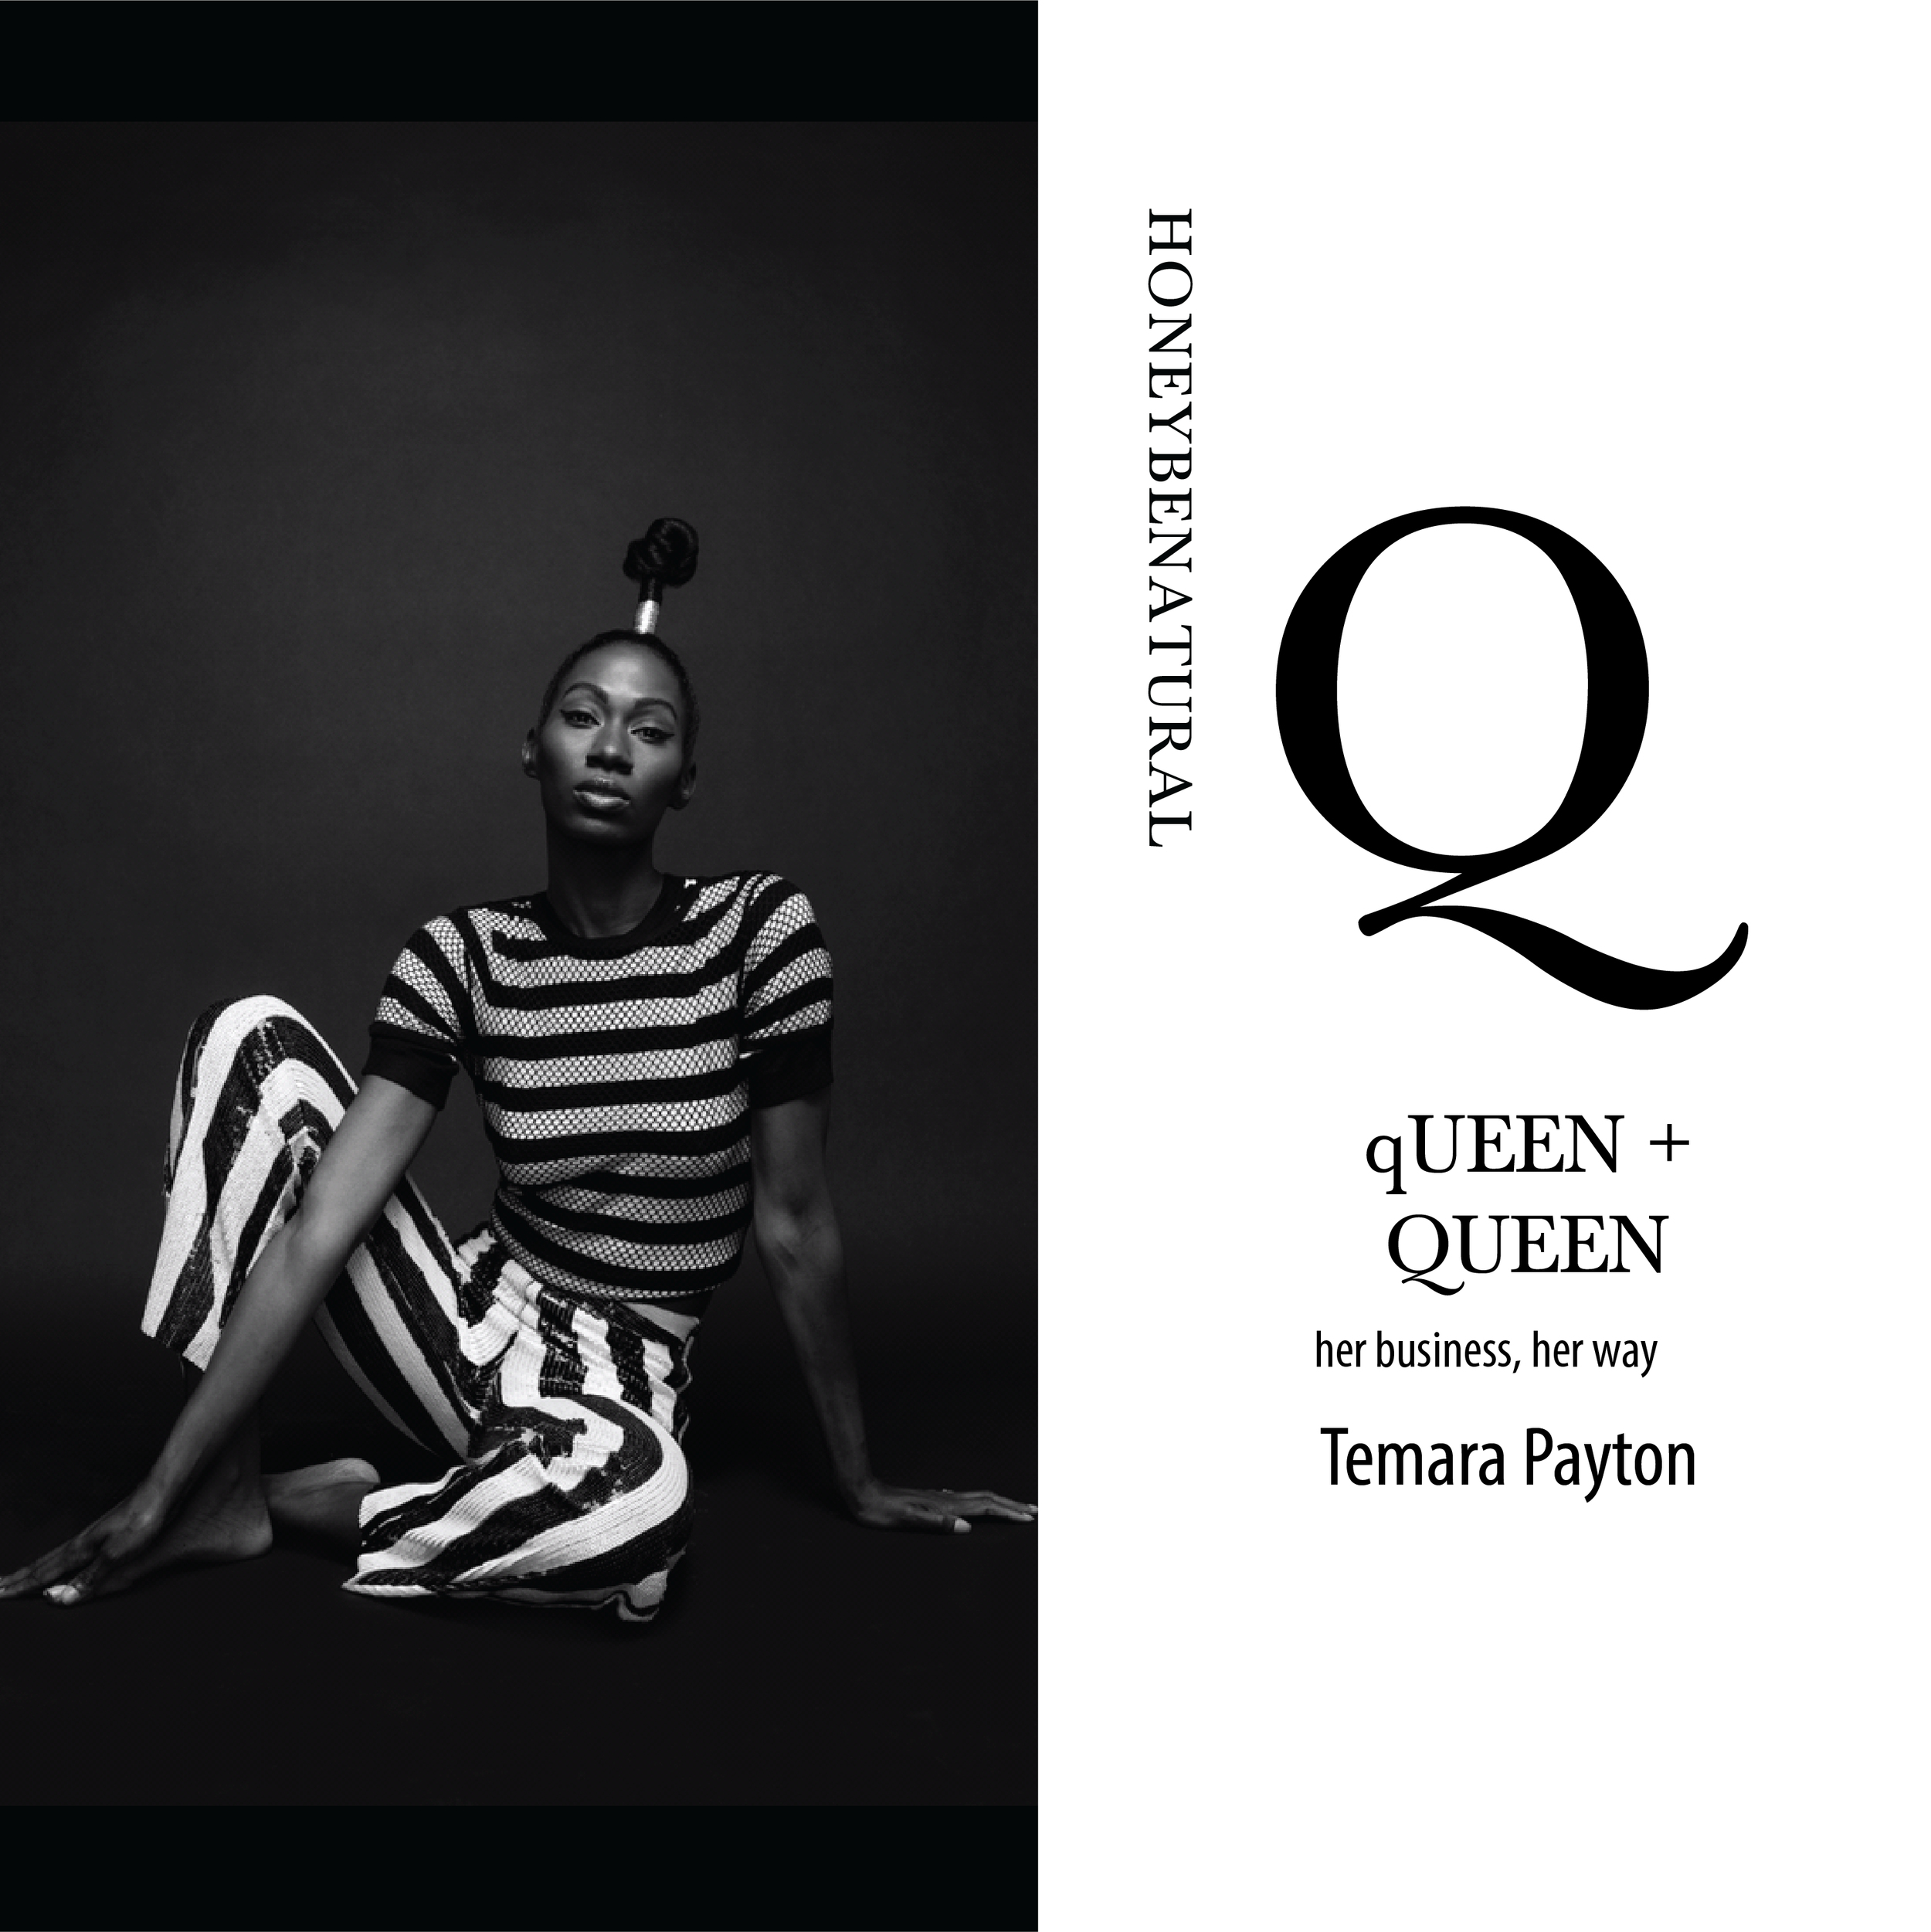 QueenPlusQueen_July 2019_Temara Payton_Title-01.png